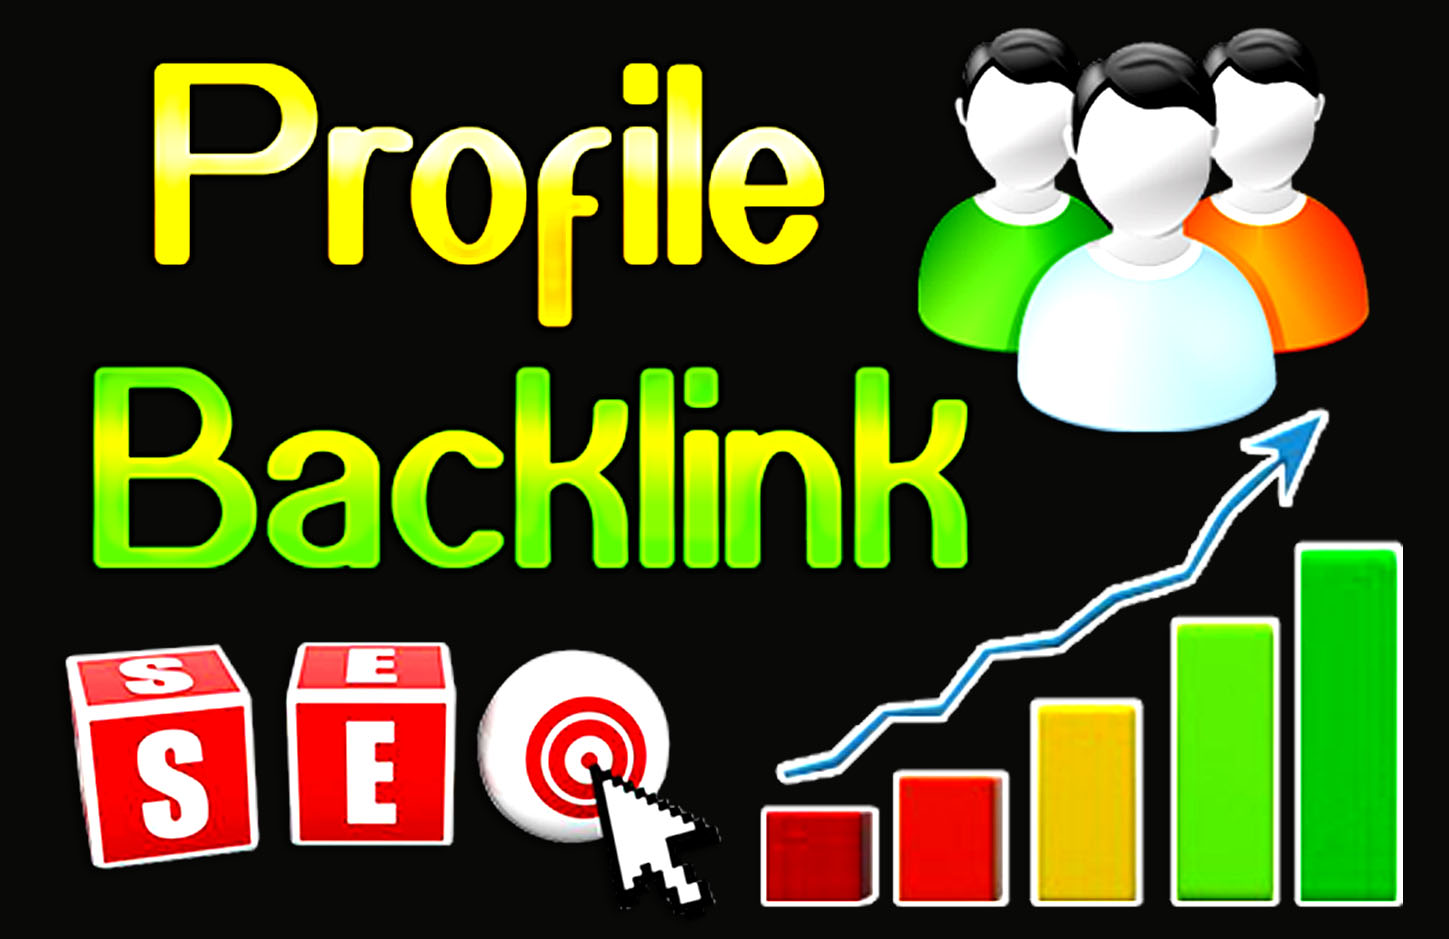 10000 Mix Profiles backlinks including Forum profiles & SN profiles